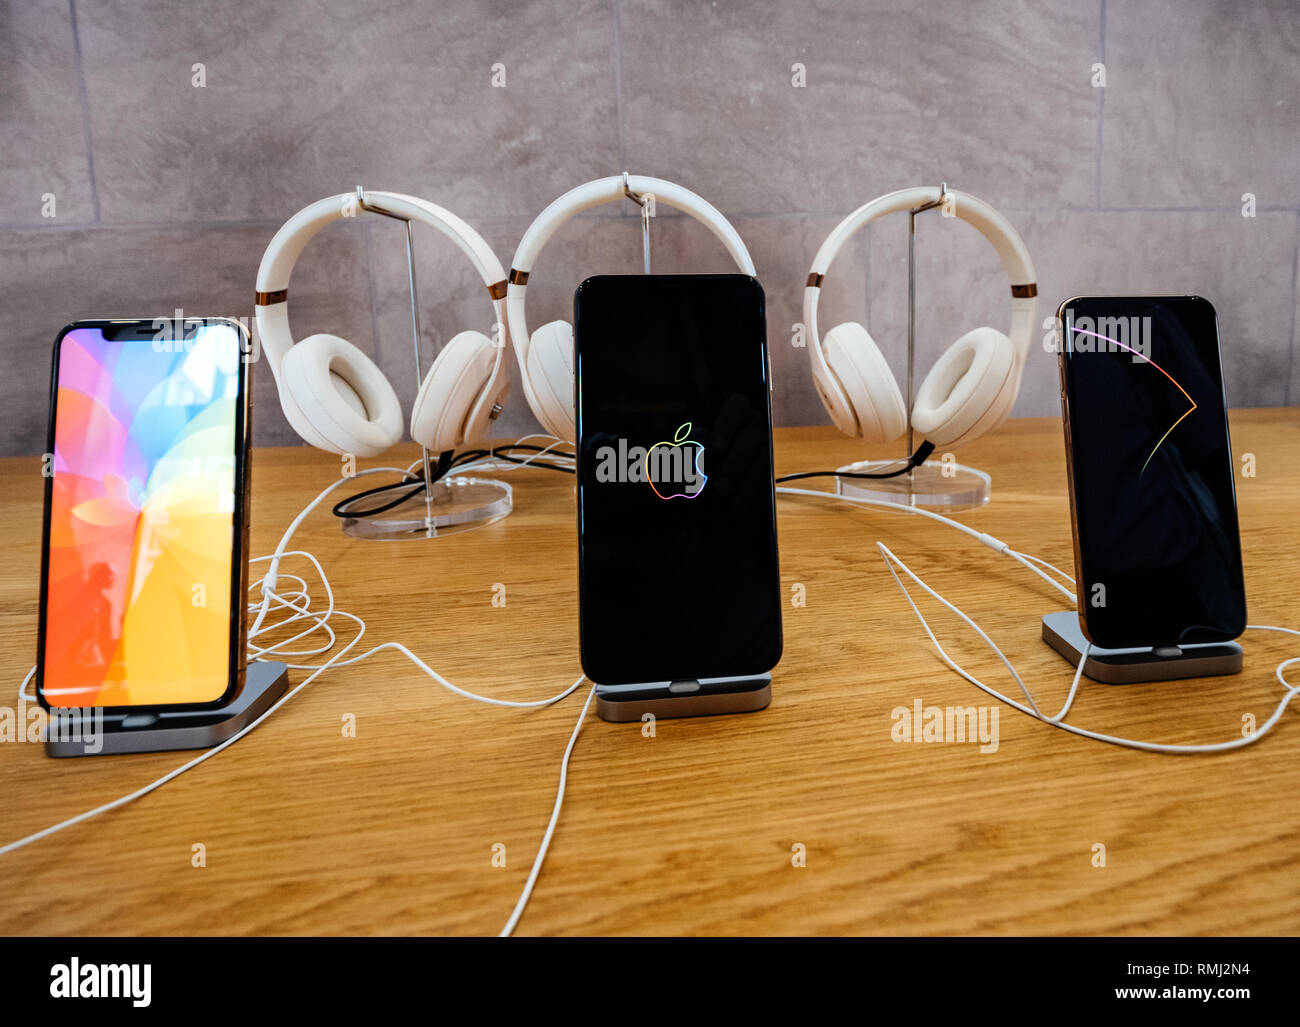 STRASBOURG, FRANCE - SEP 21, 2018: Apple Store with customers people